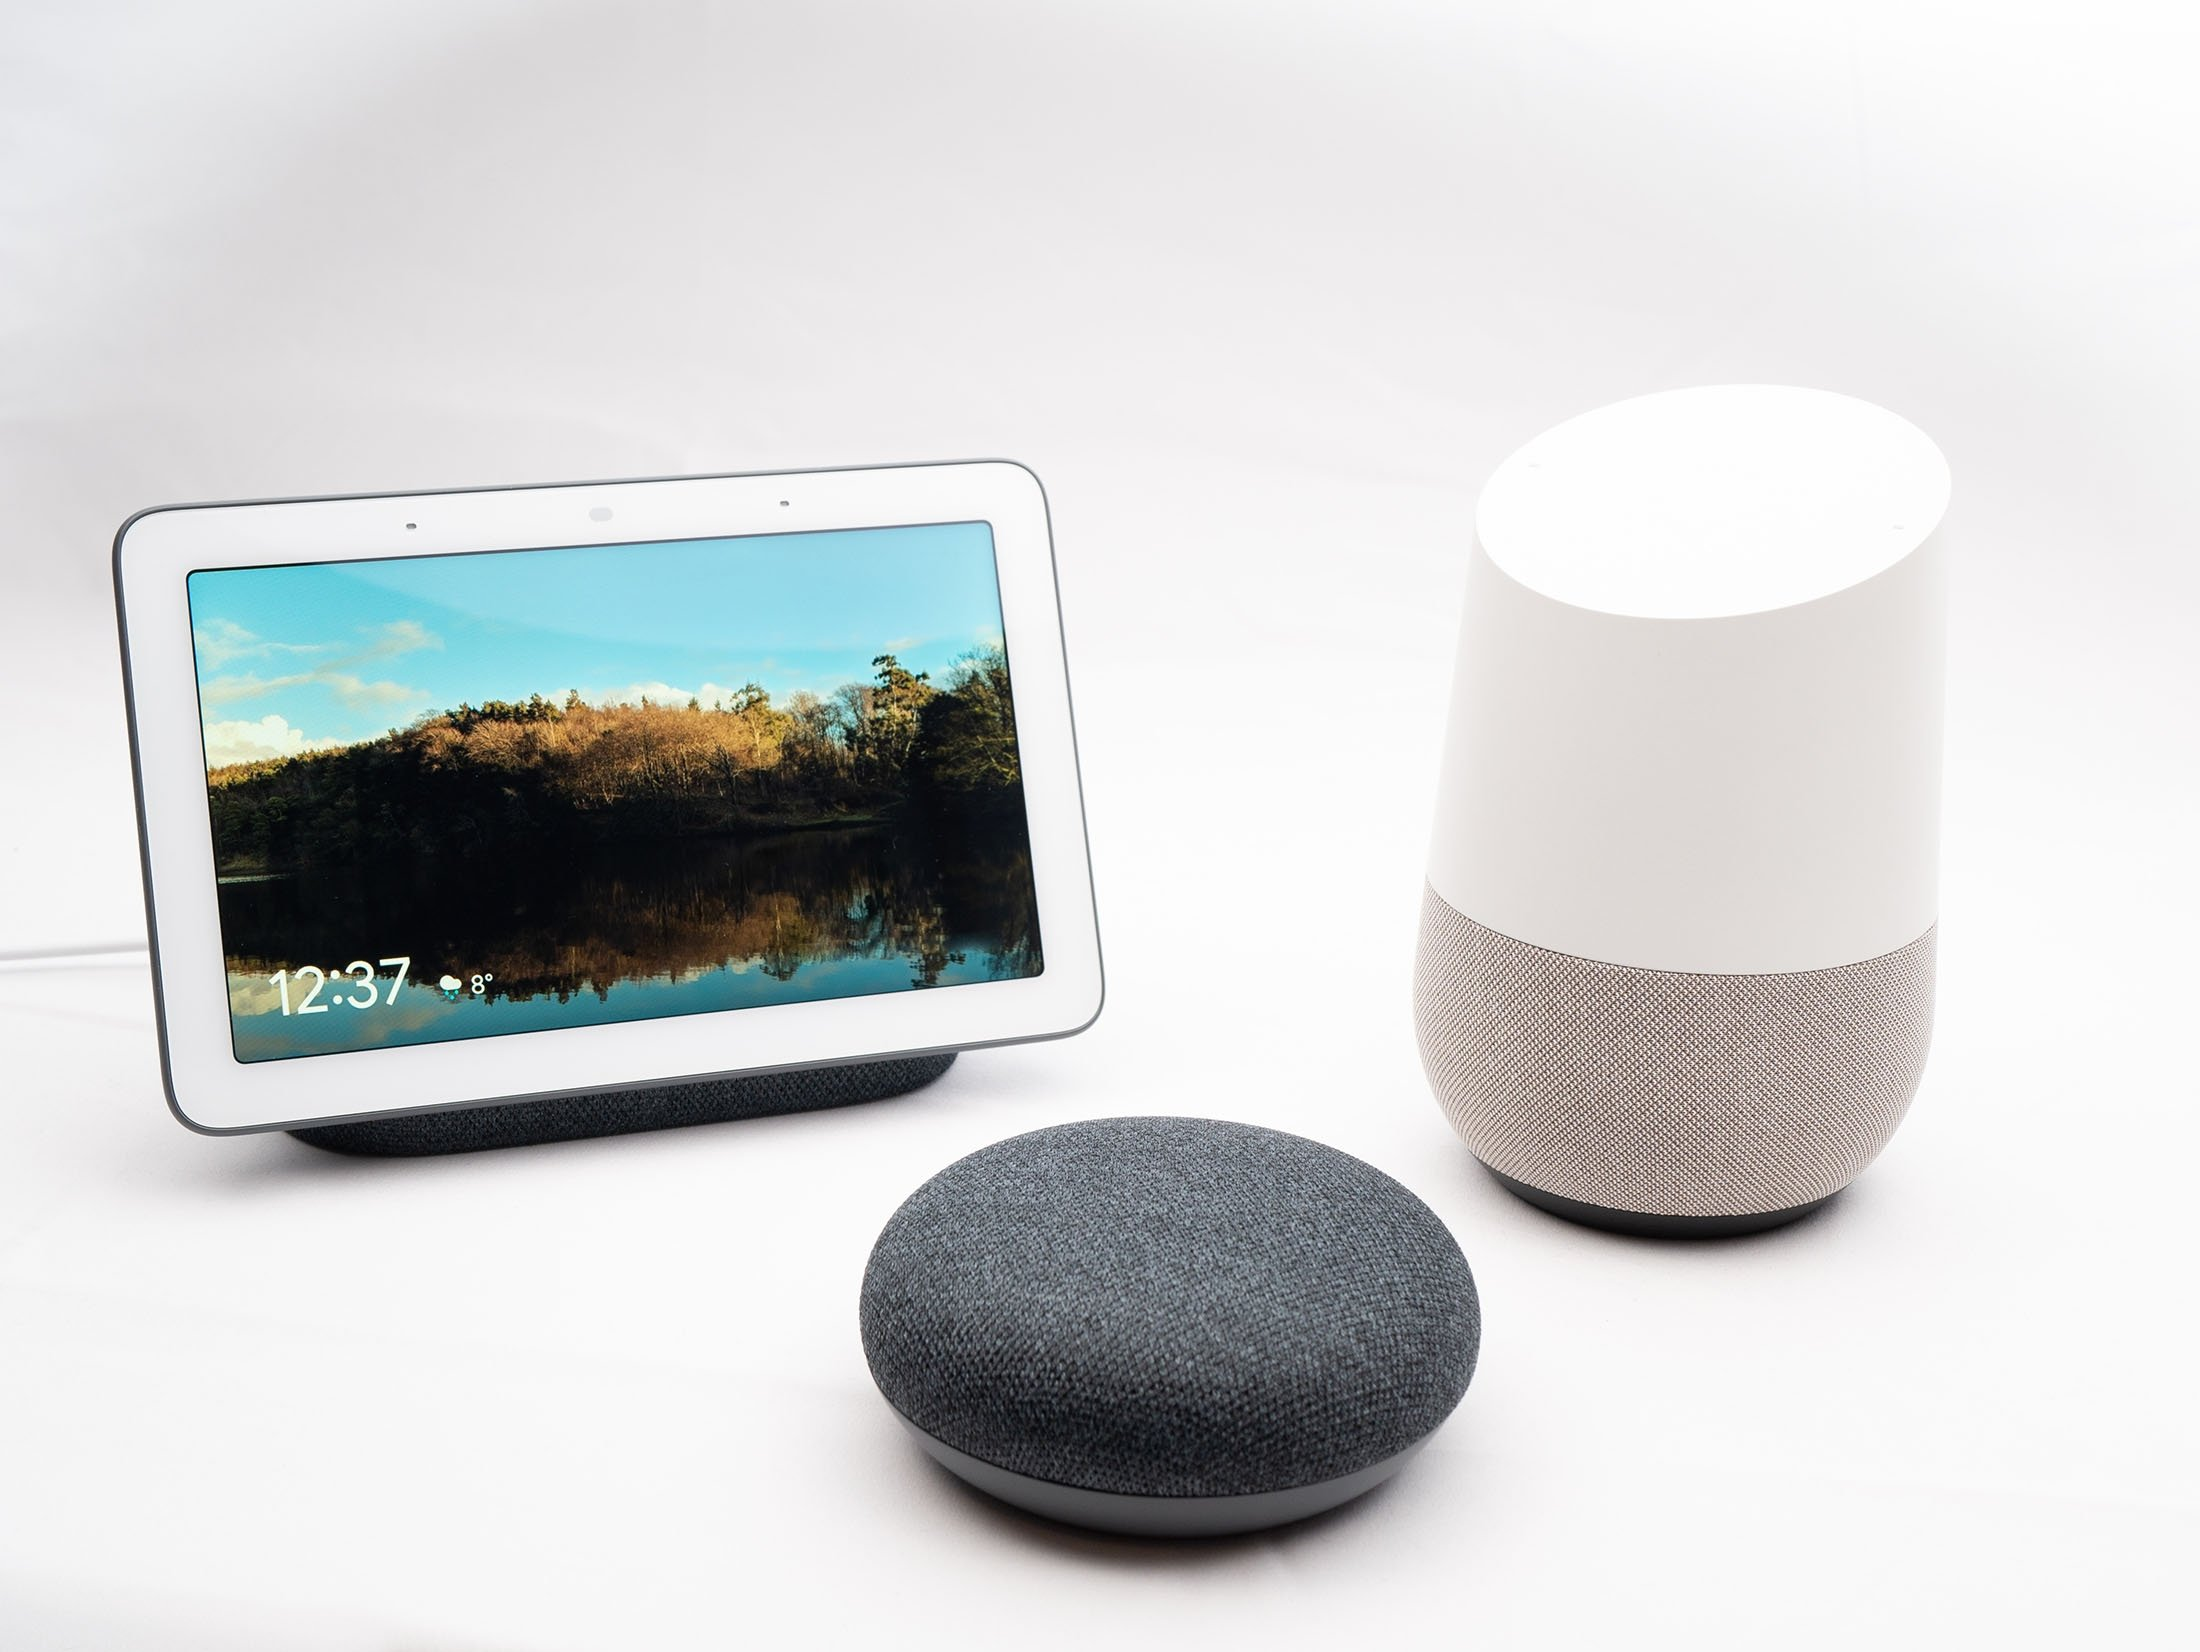 Google Nest Hub, Google Home and Google Home Mini are a part of the line of smart speakers and devices developed by Google. (Shutterstock Photo)